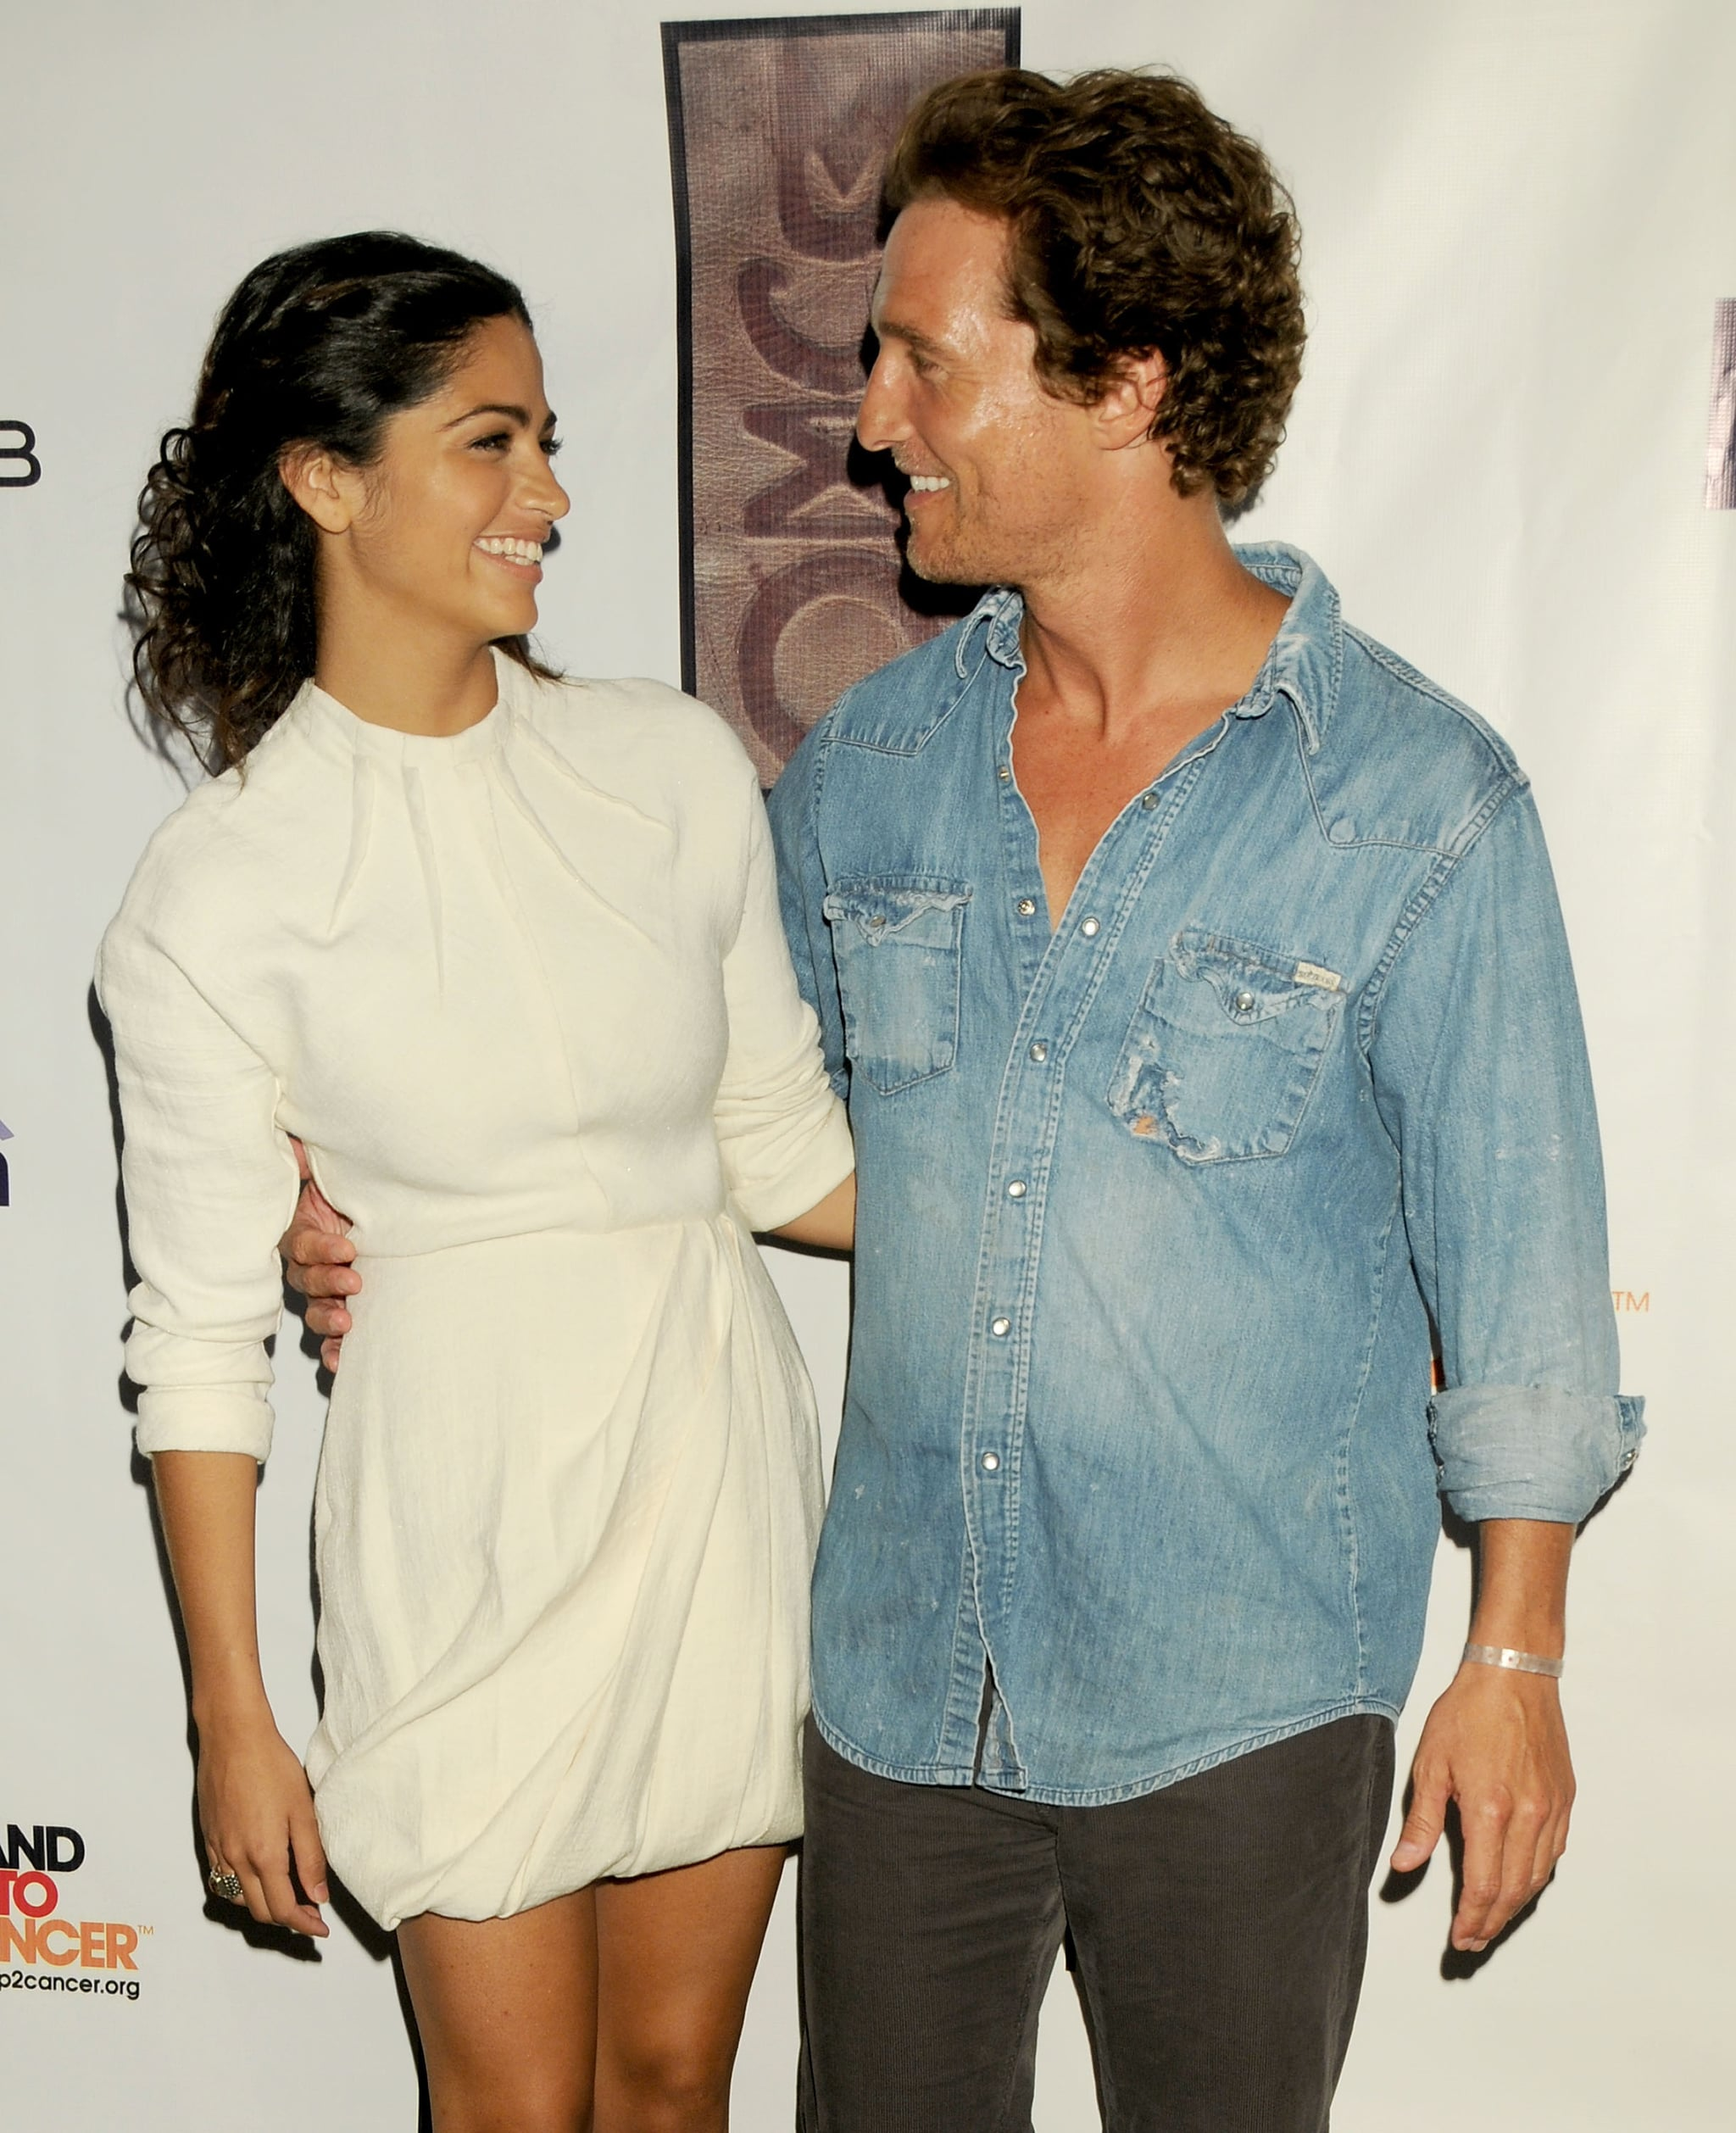 Matthew and Camila only had eyes for each other at an event in LA in August 2008.